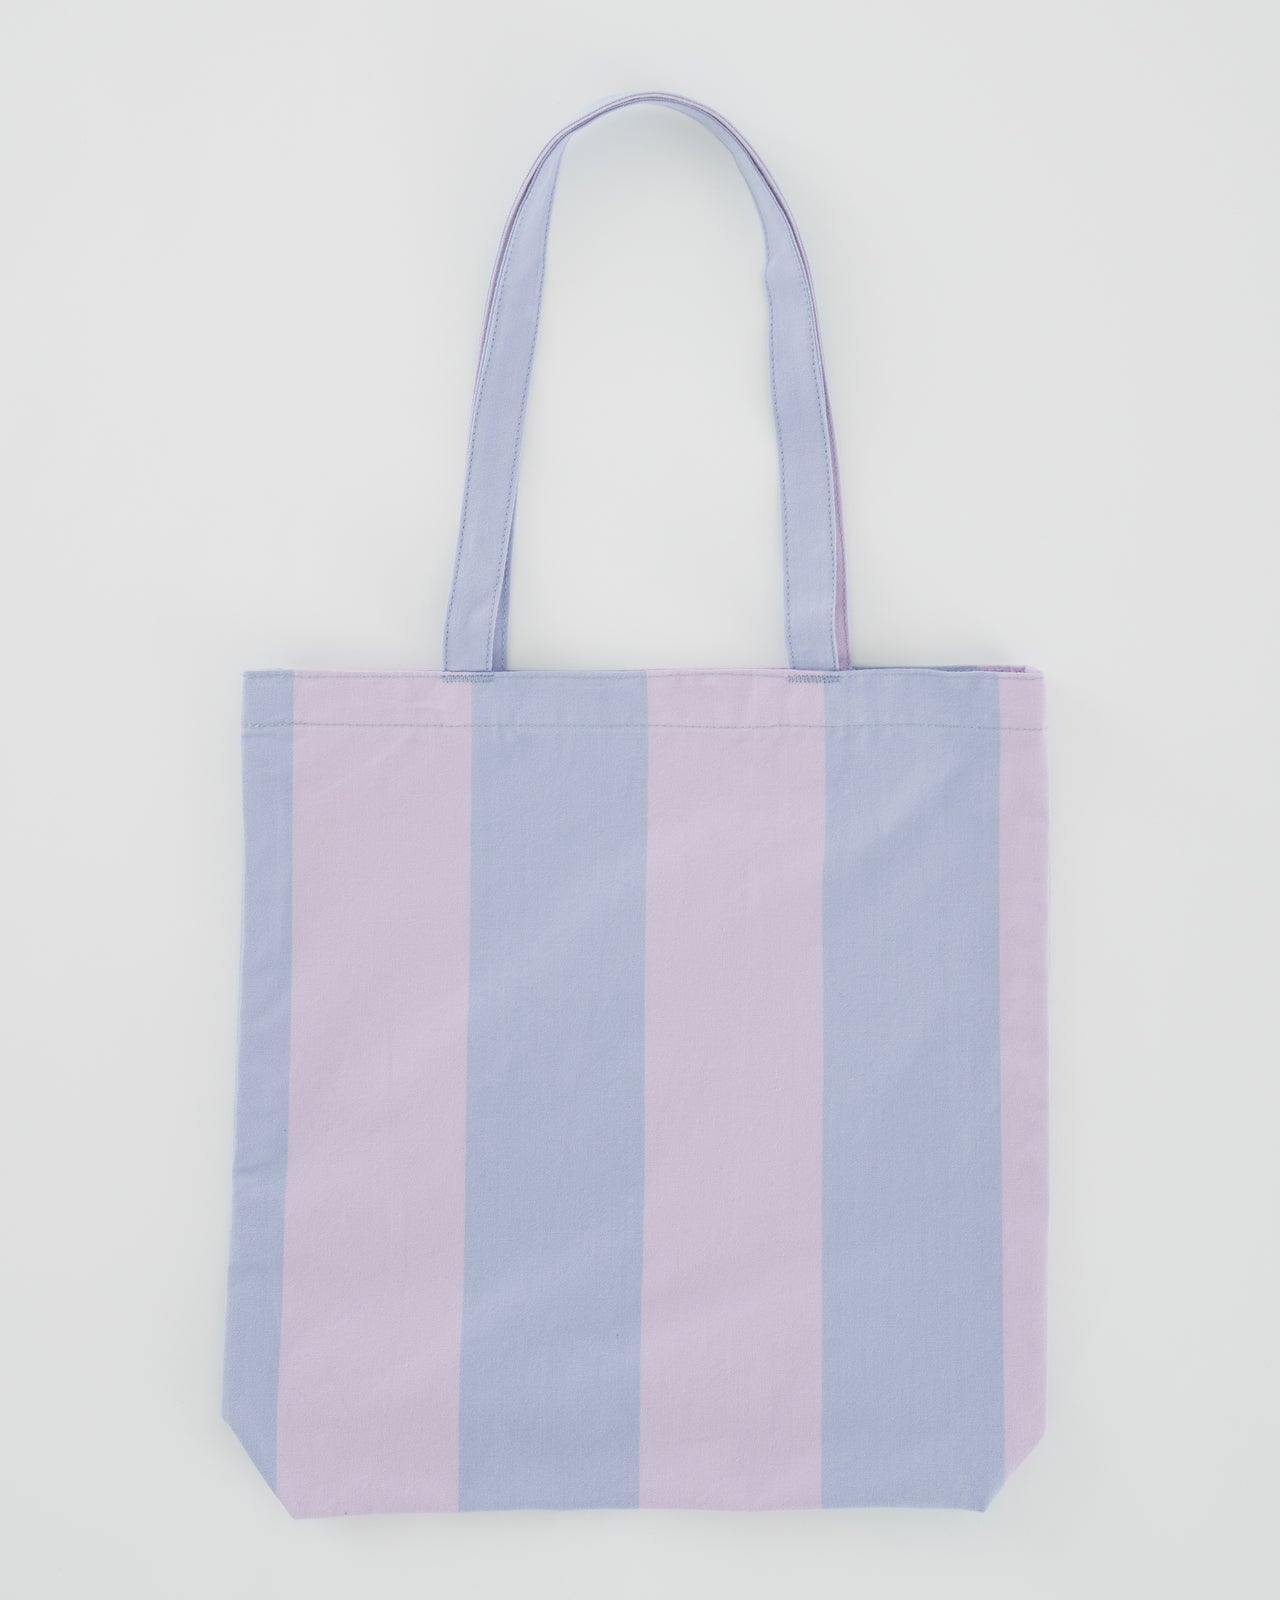 Merch Tote - Pale Orchid Stripe